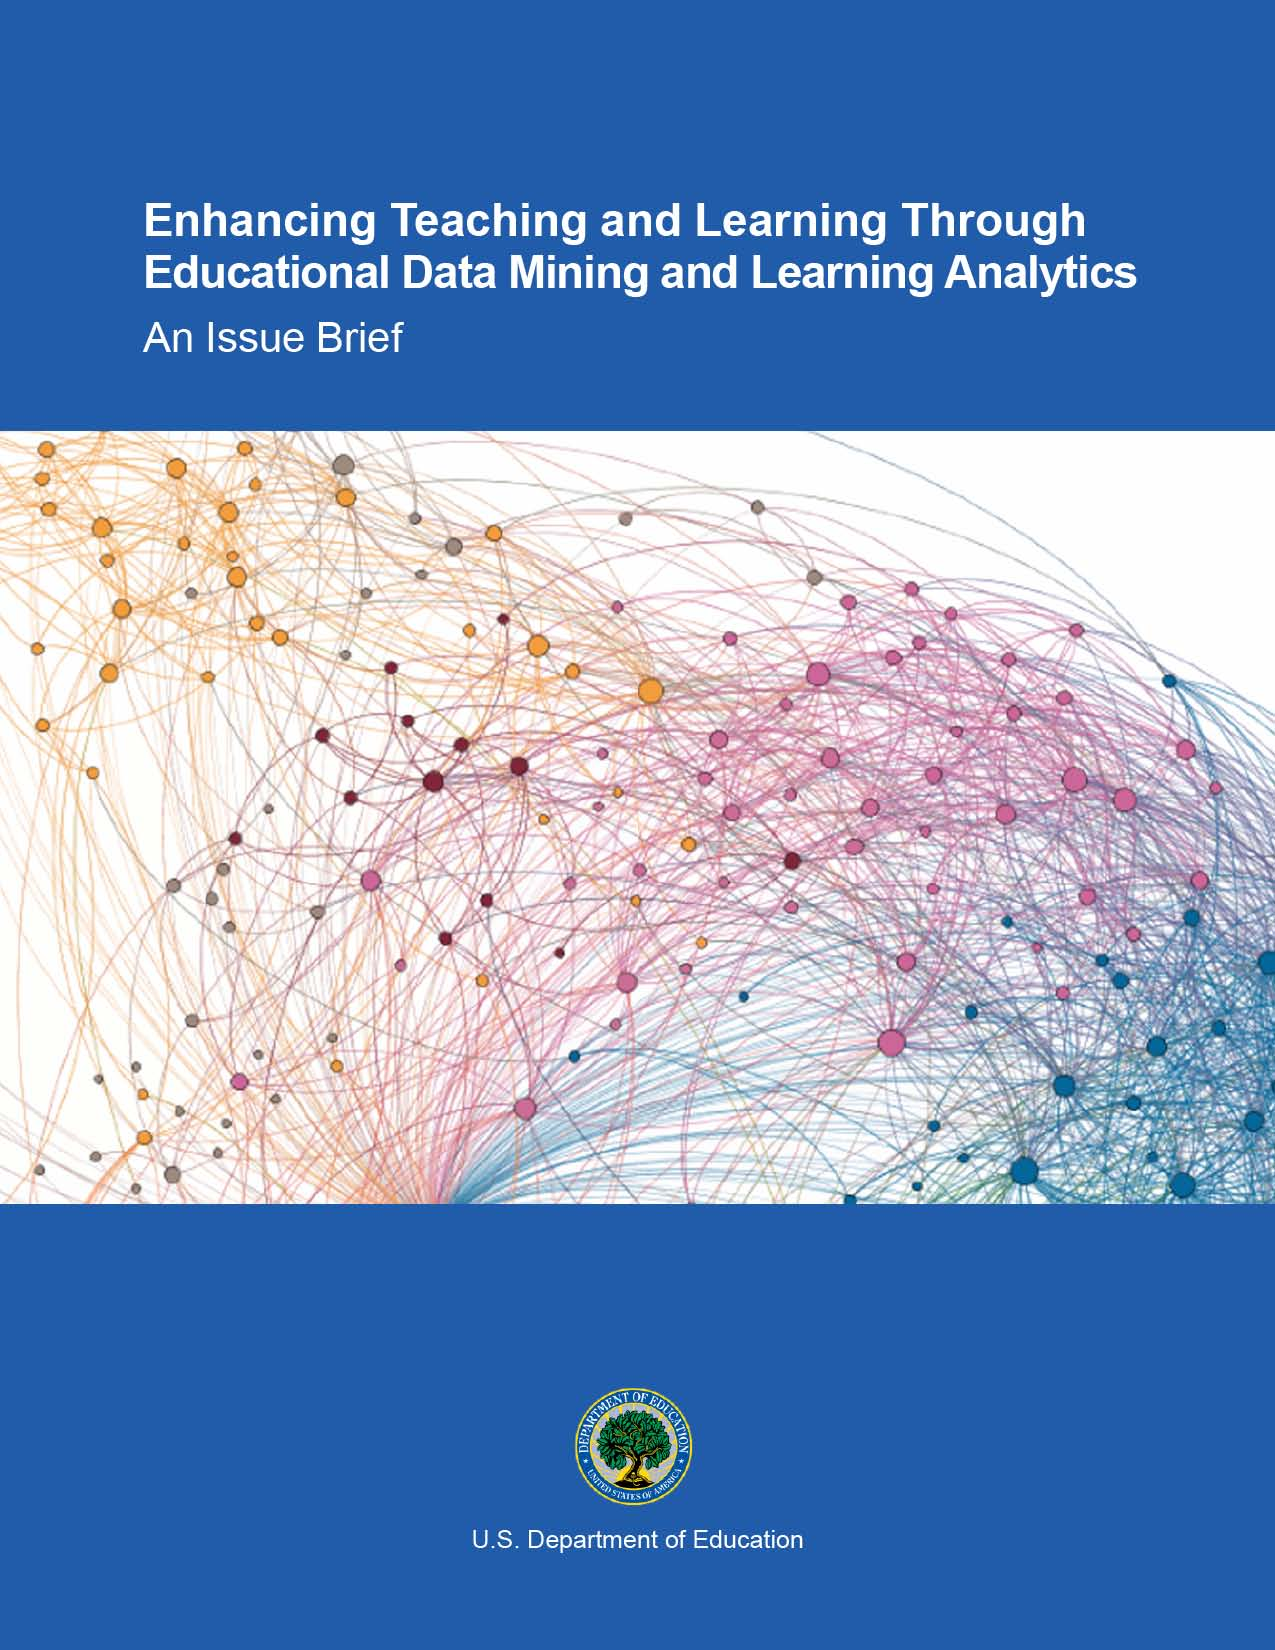 Enhancing Teaching and Learning Through